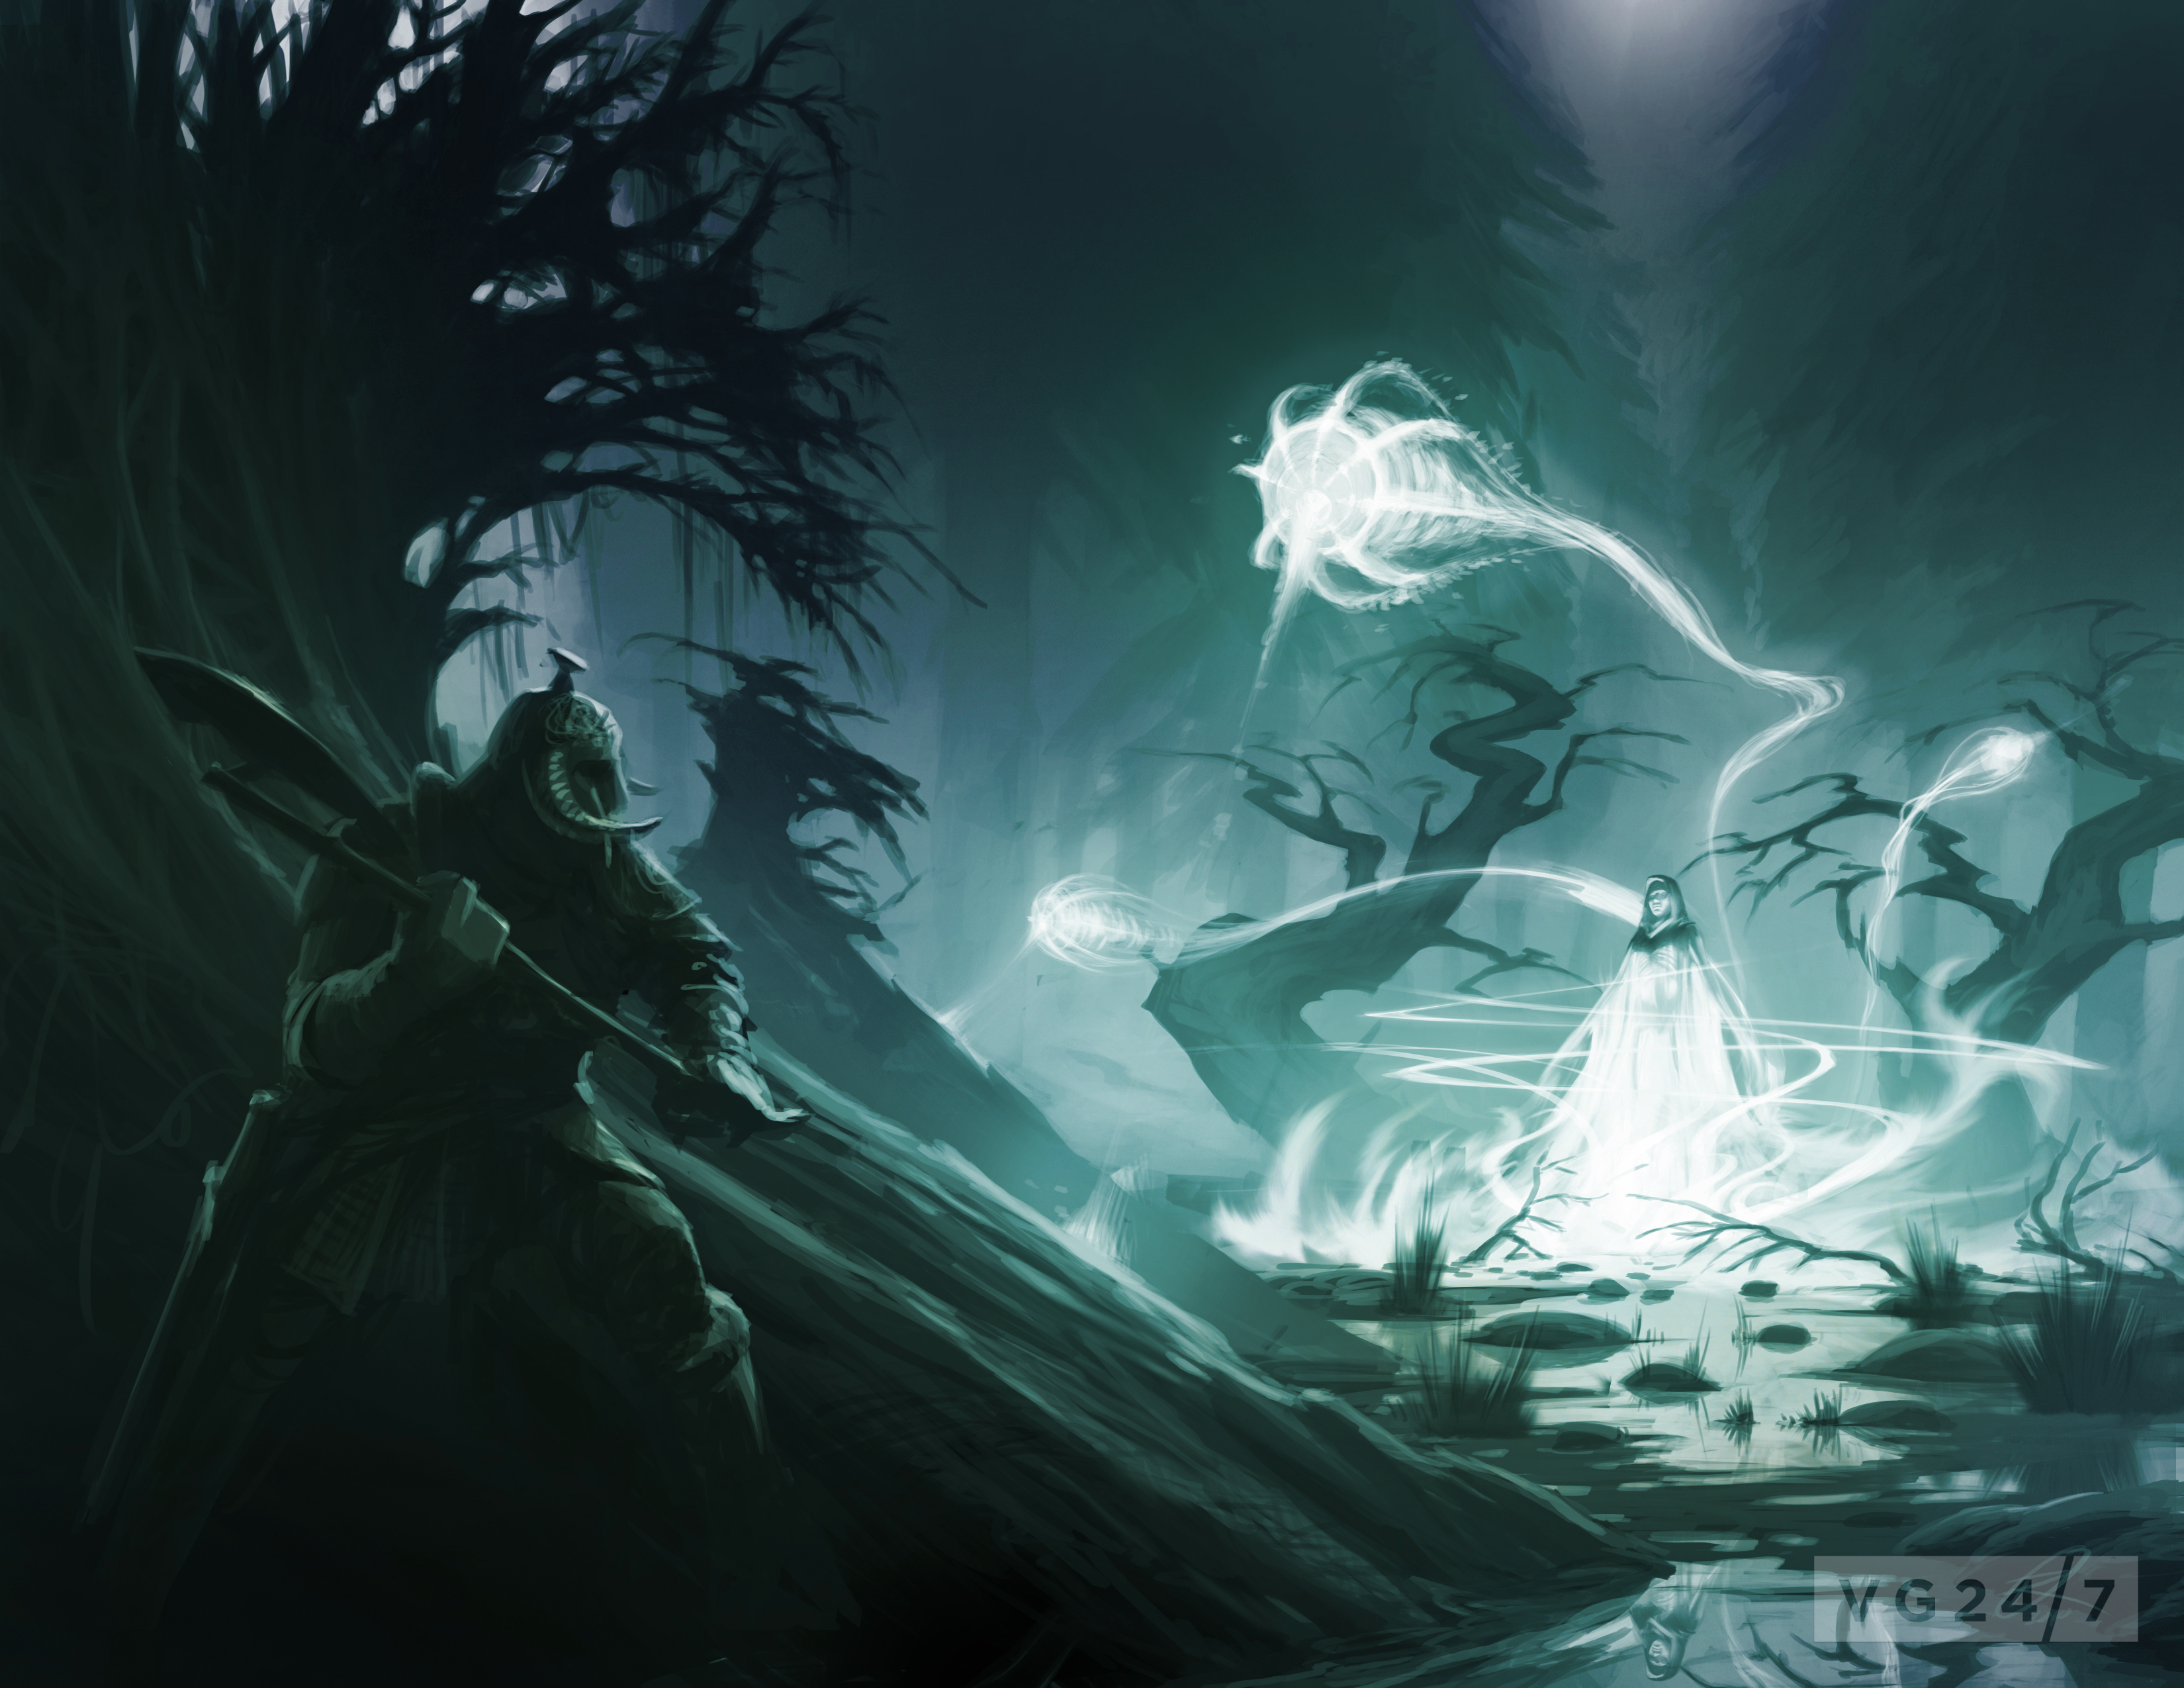 Quick shots - Skyrim concept art depicts people and places - VG247